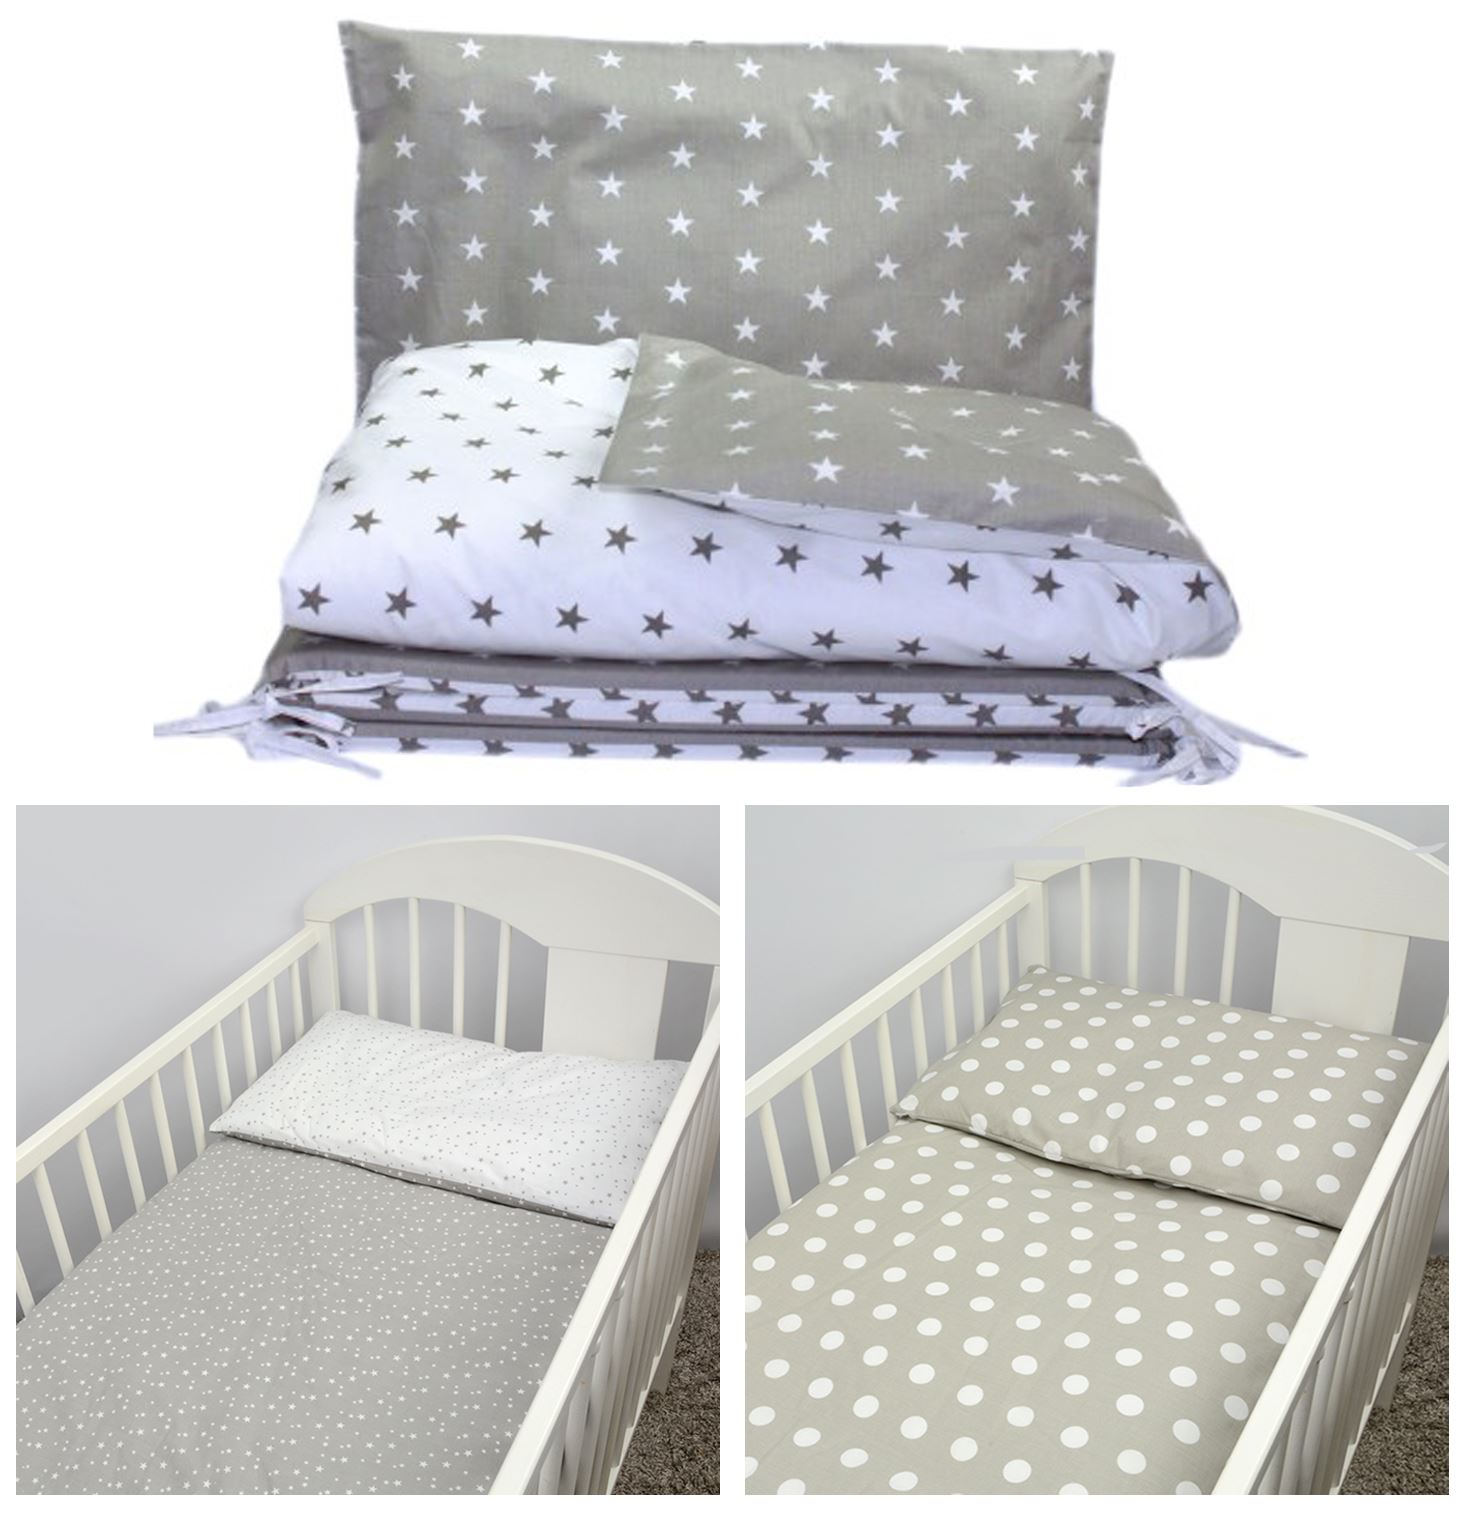 4 Piece Toddler Kids Cot Bed Set Duvet Pillow /& Covers 120x90 135x100 150x120 cm 120 x 90 cm Duvet, 7